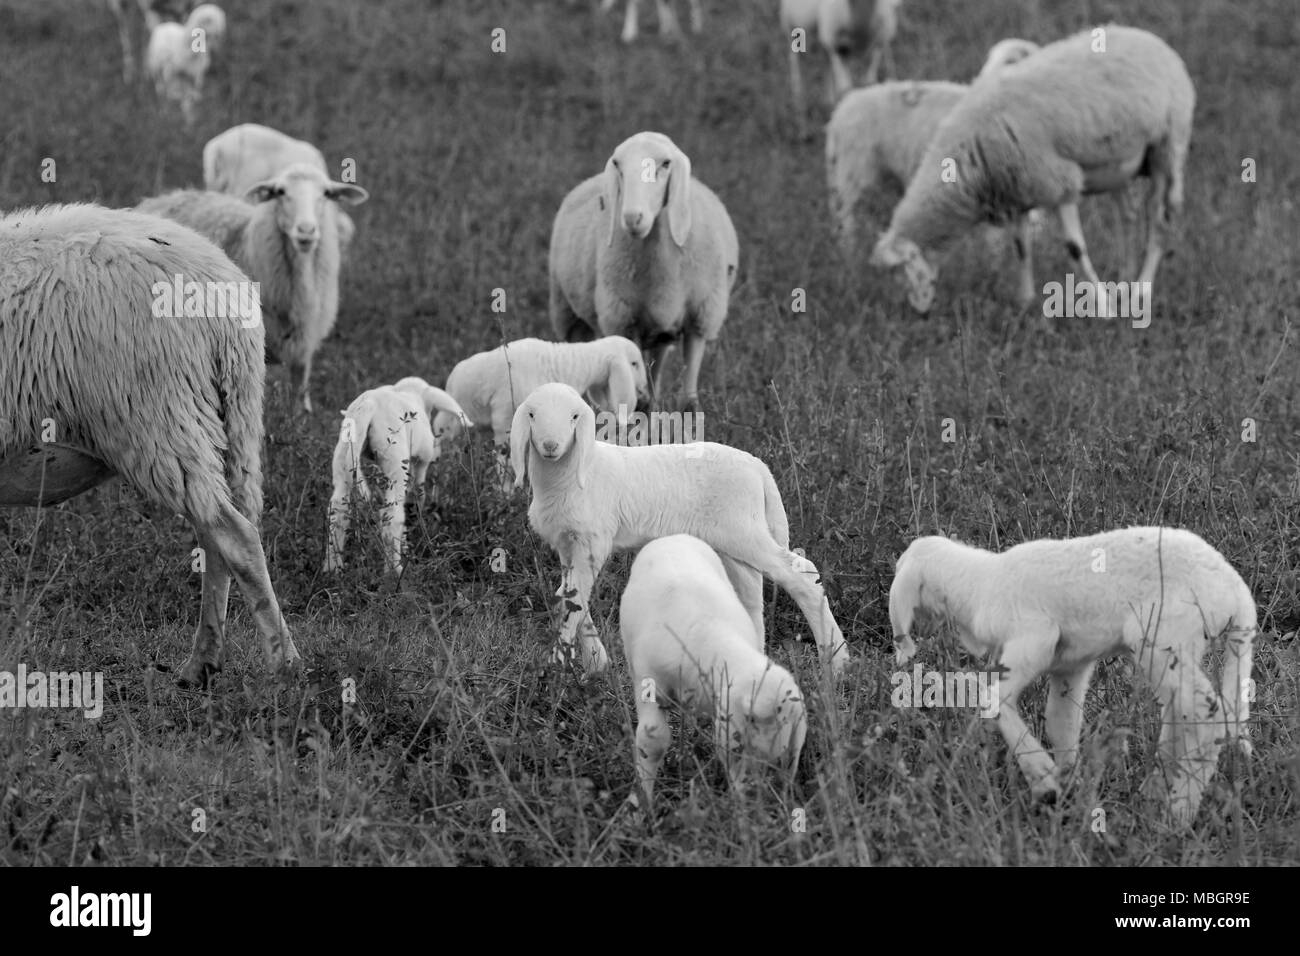 Flock of sheep browsing on alfalfa countryside hill field - Stock Image